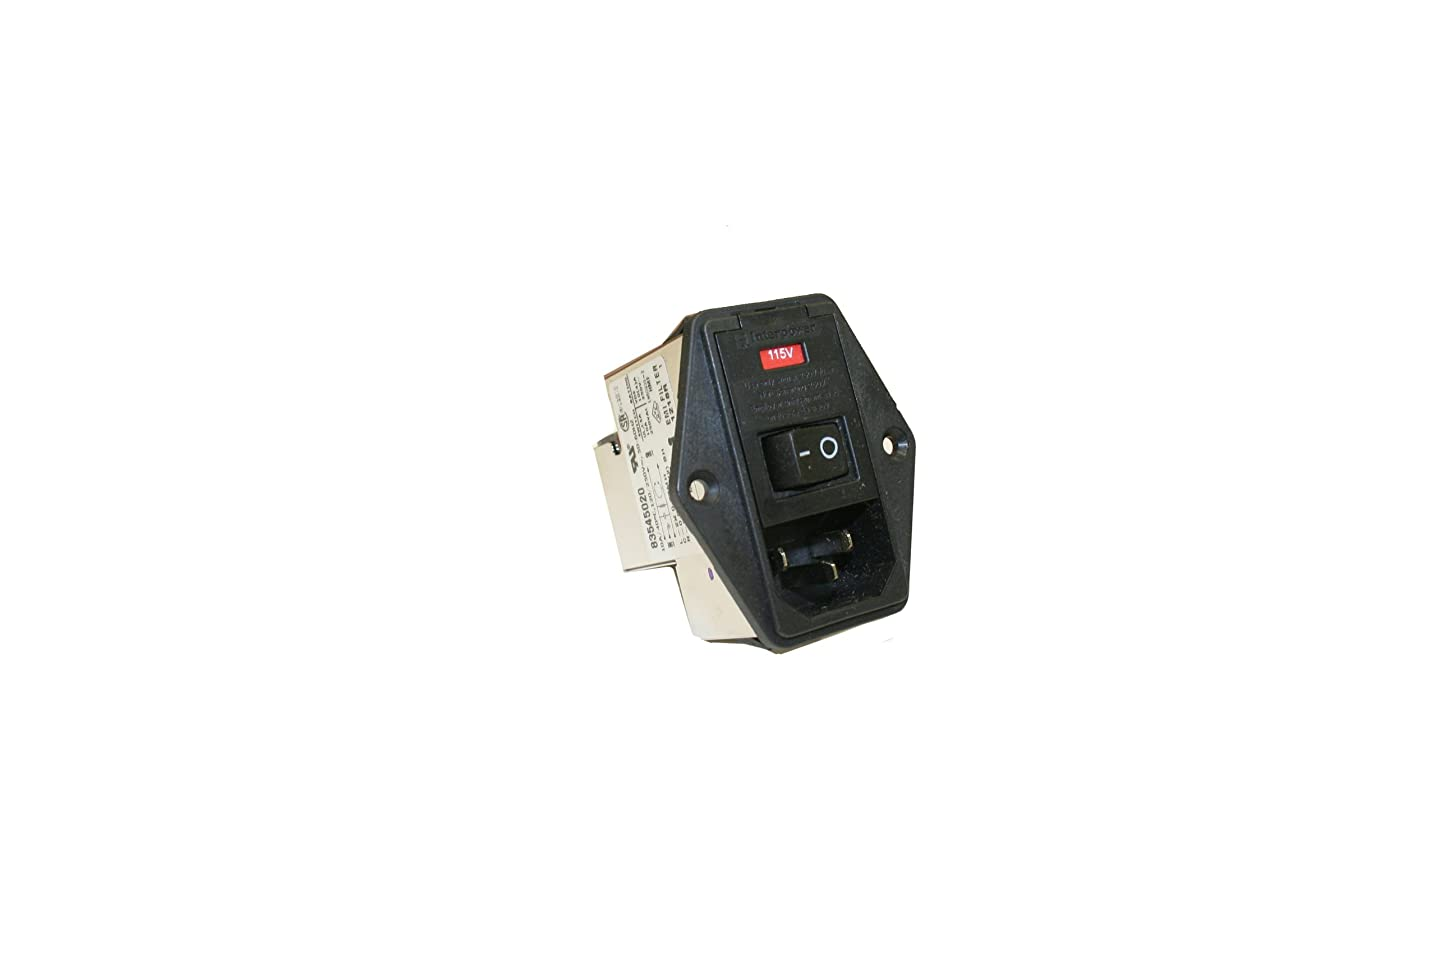 Interpower 83545020 Five Function Medical Grade Module, C14 Inlet, Switch, Double Fused, Voltage Selector, Filter, 10A Current Rating, 120/250VAC Voltage Rating